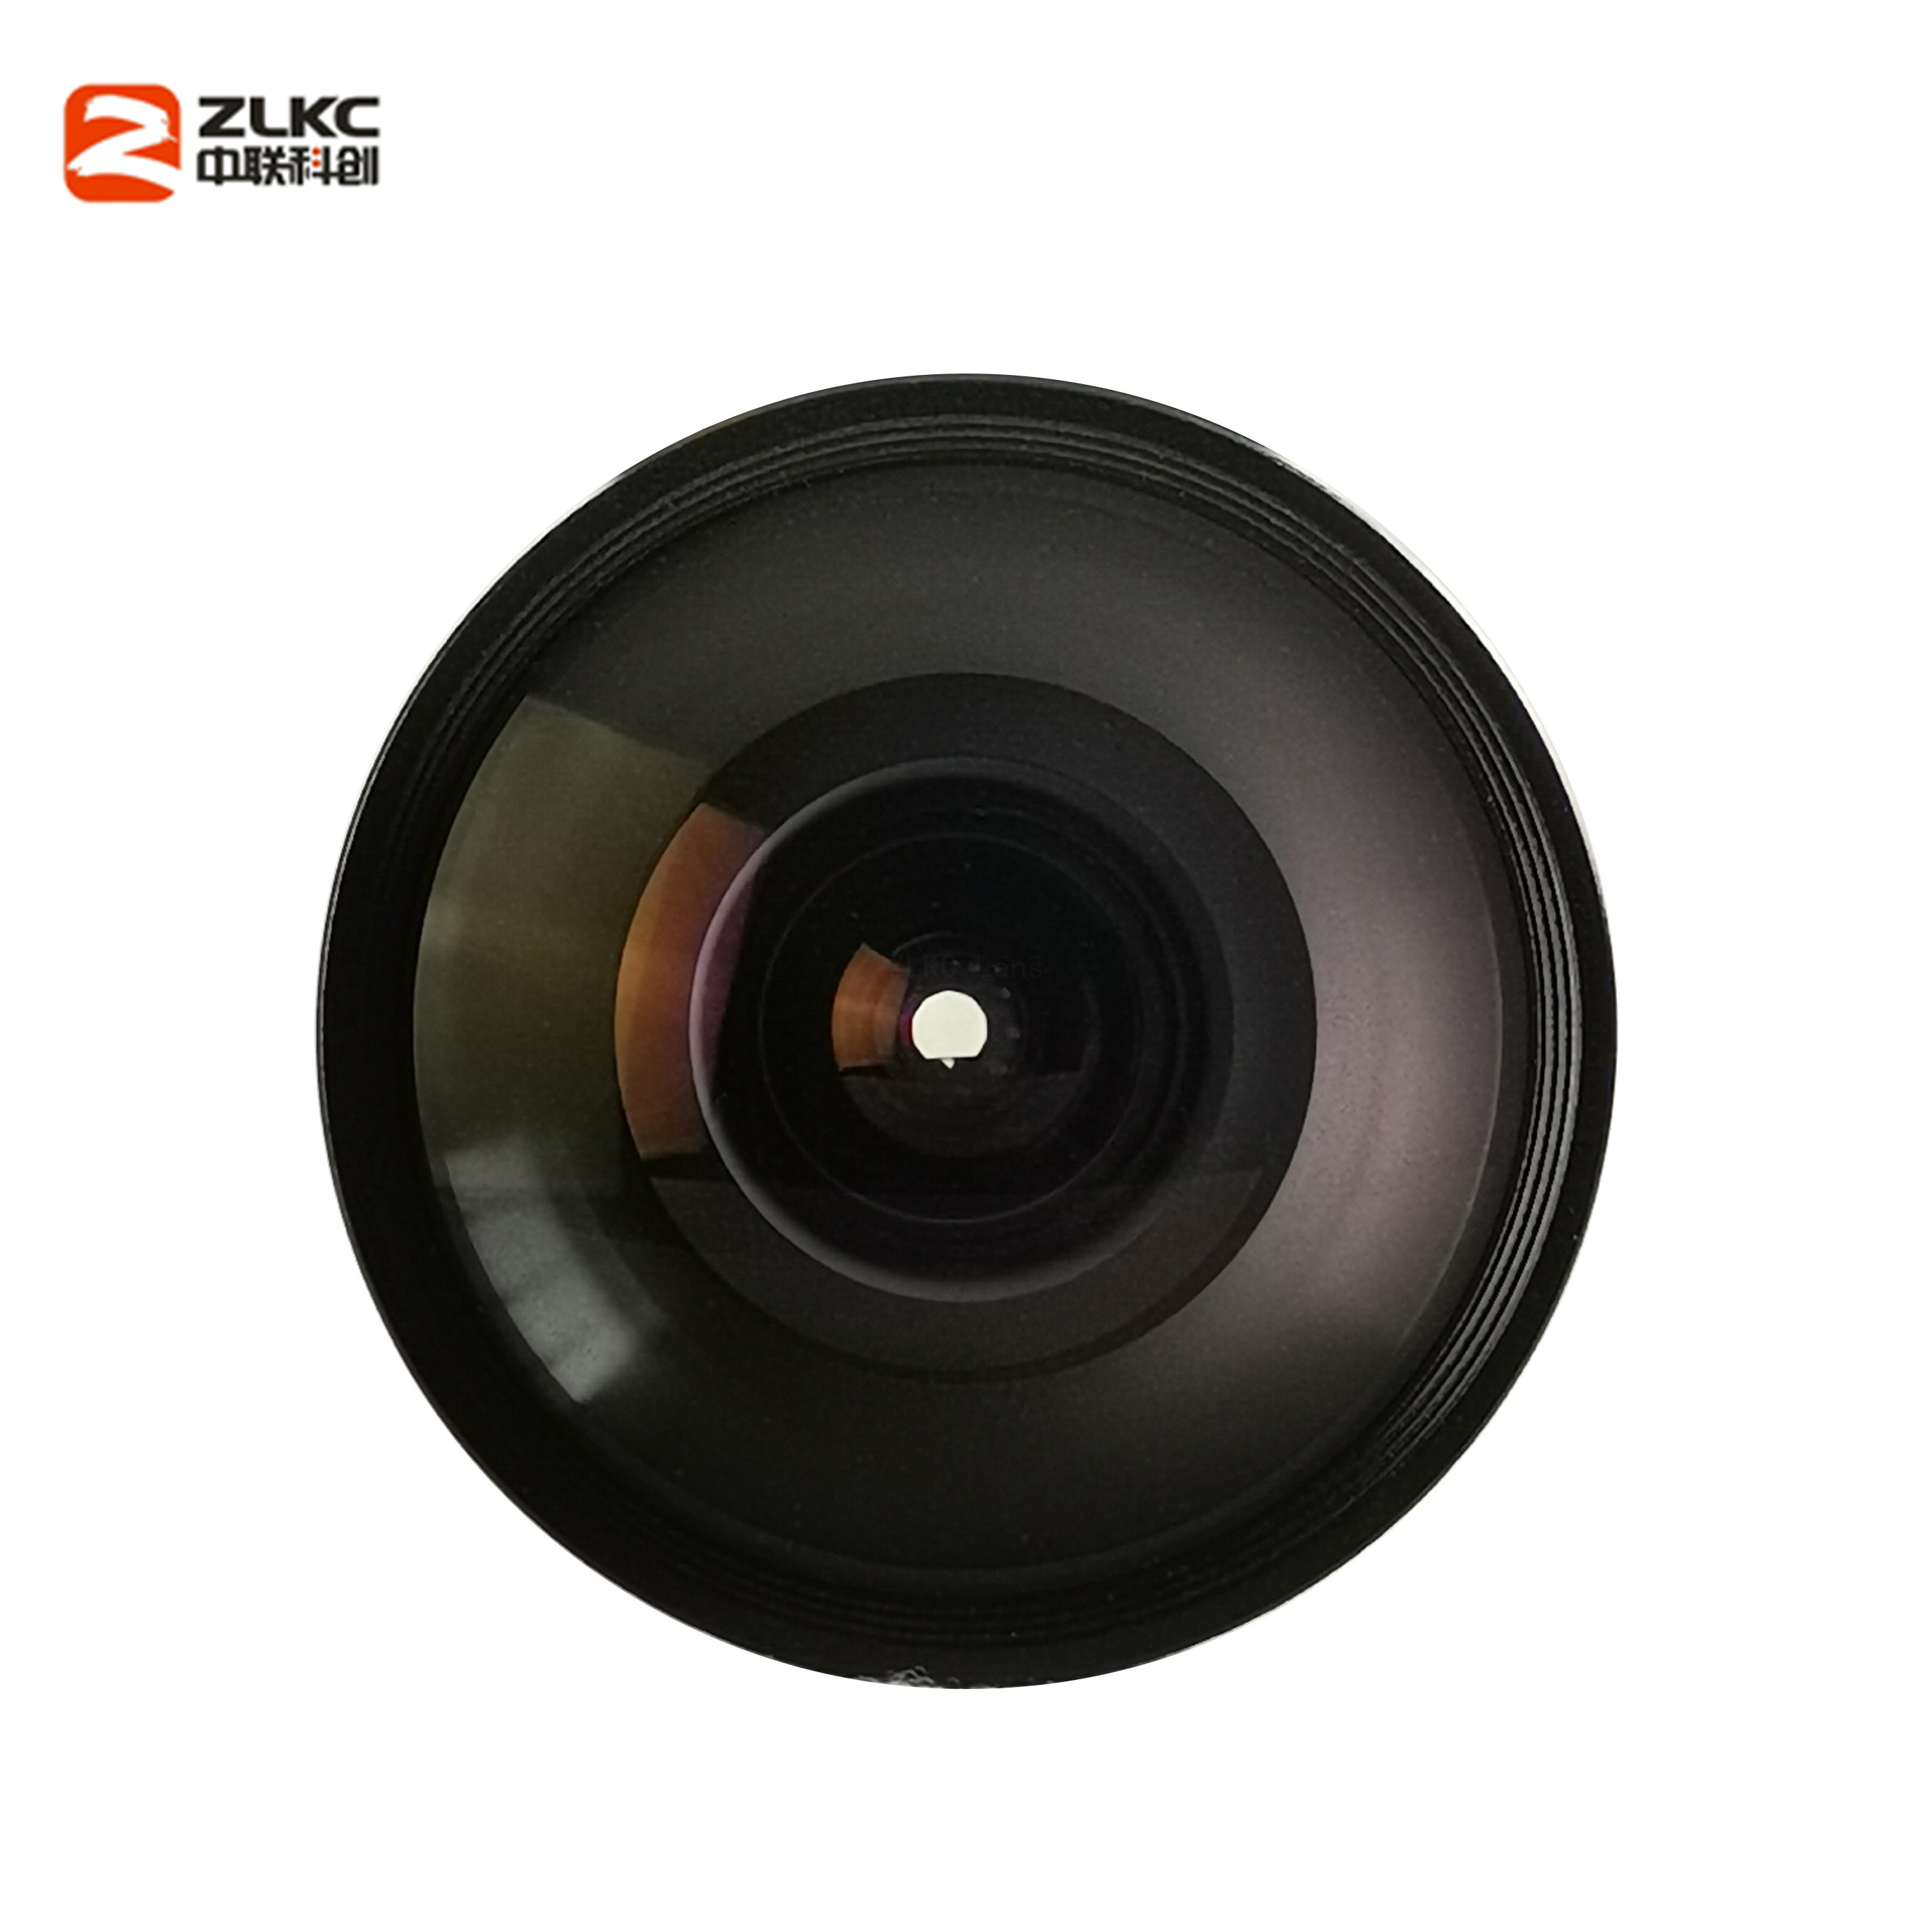 Image 5 - New Model 8mm Machine Vision Fixed Focal Camera Lens 5Megapixel HD CCTV Lens 1 Inch F1.4 Manual Iris C Mount Low Distortion Lens-in CCTV Parts from Security & Protection